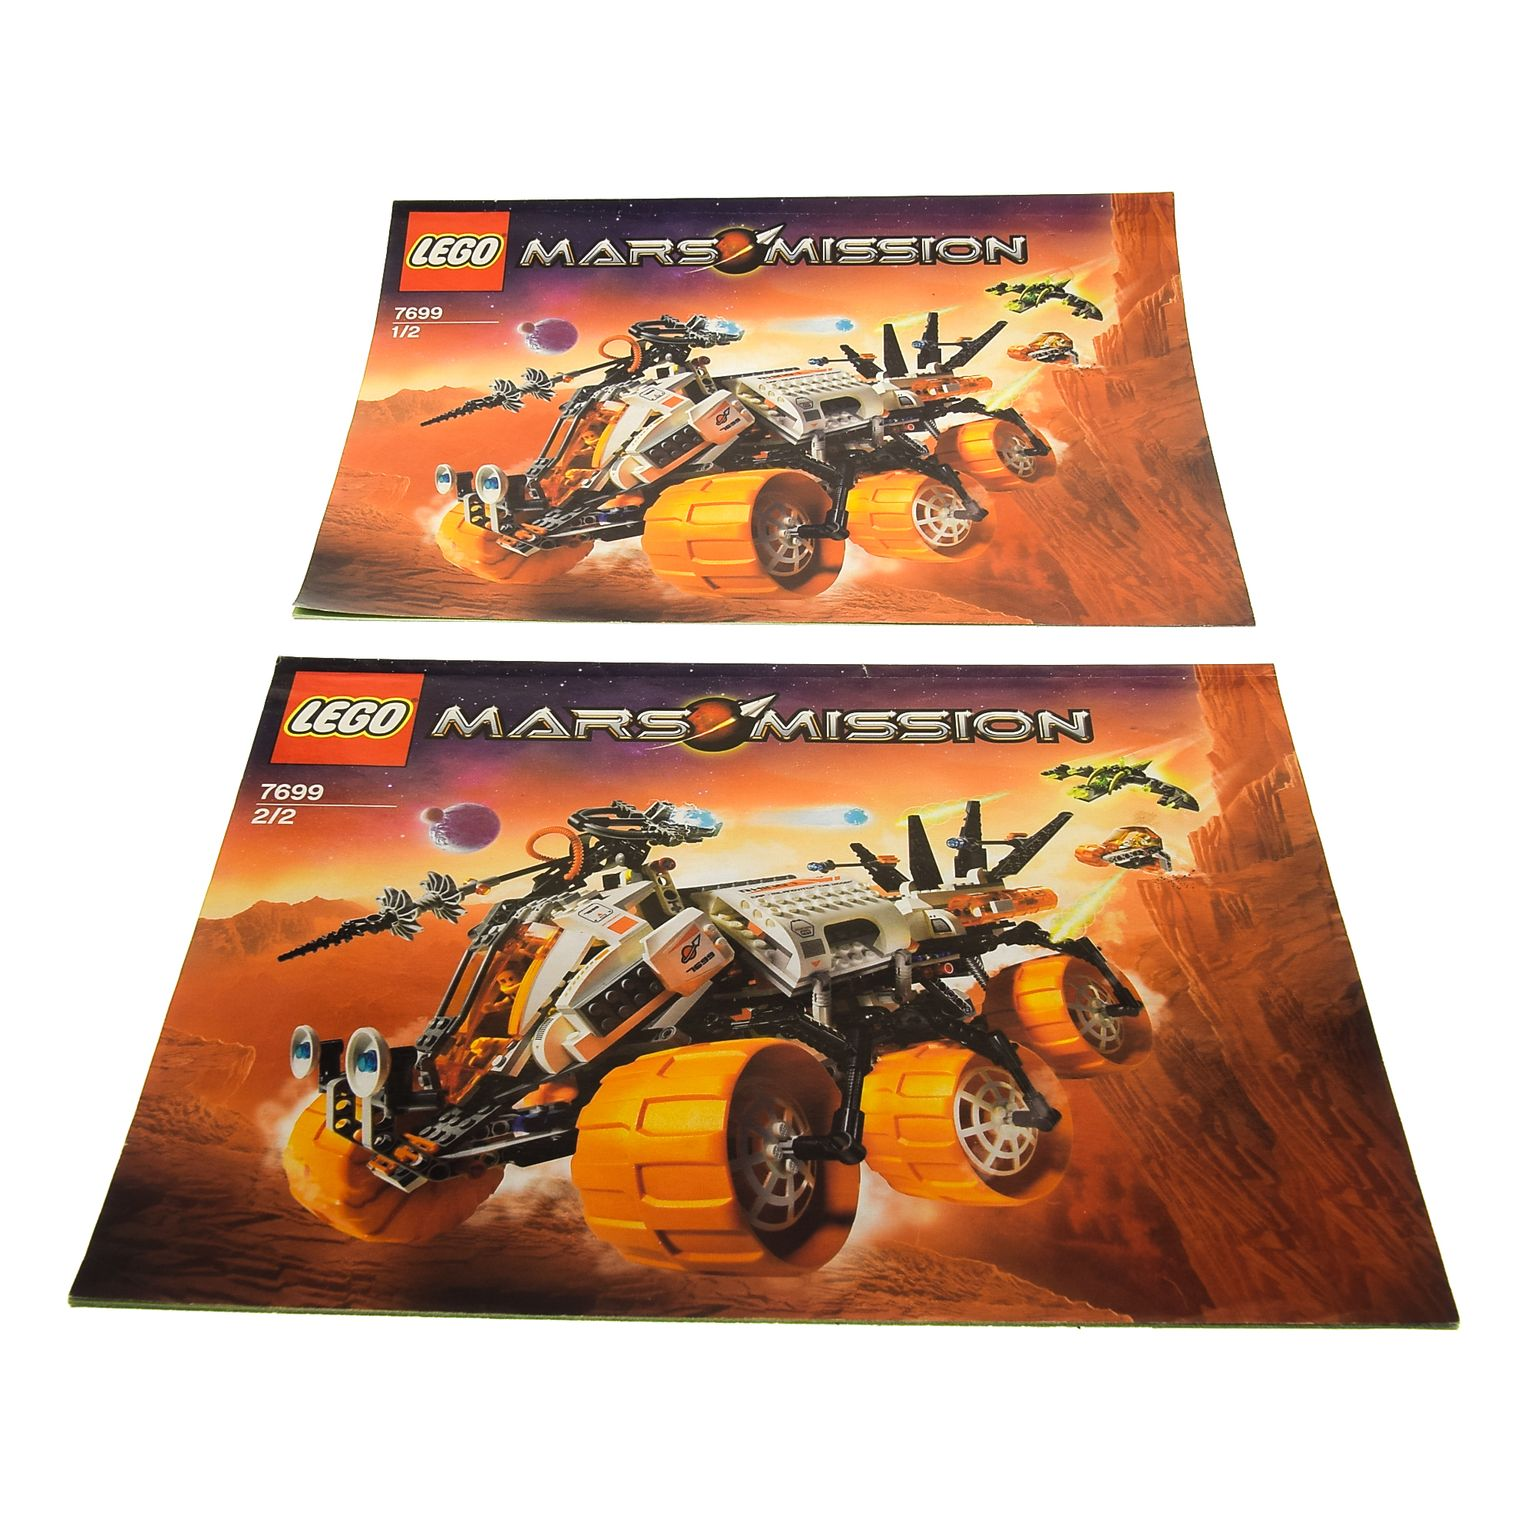 LEGO/DUPLO Spezialist | 2 x Lego brick Instructions Mars Mission MT 101  Armored Drilling Unit Booklet 1 and 2 7699